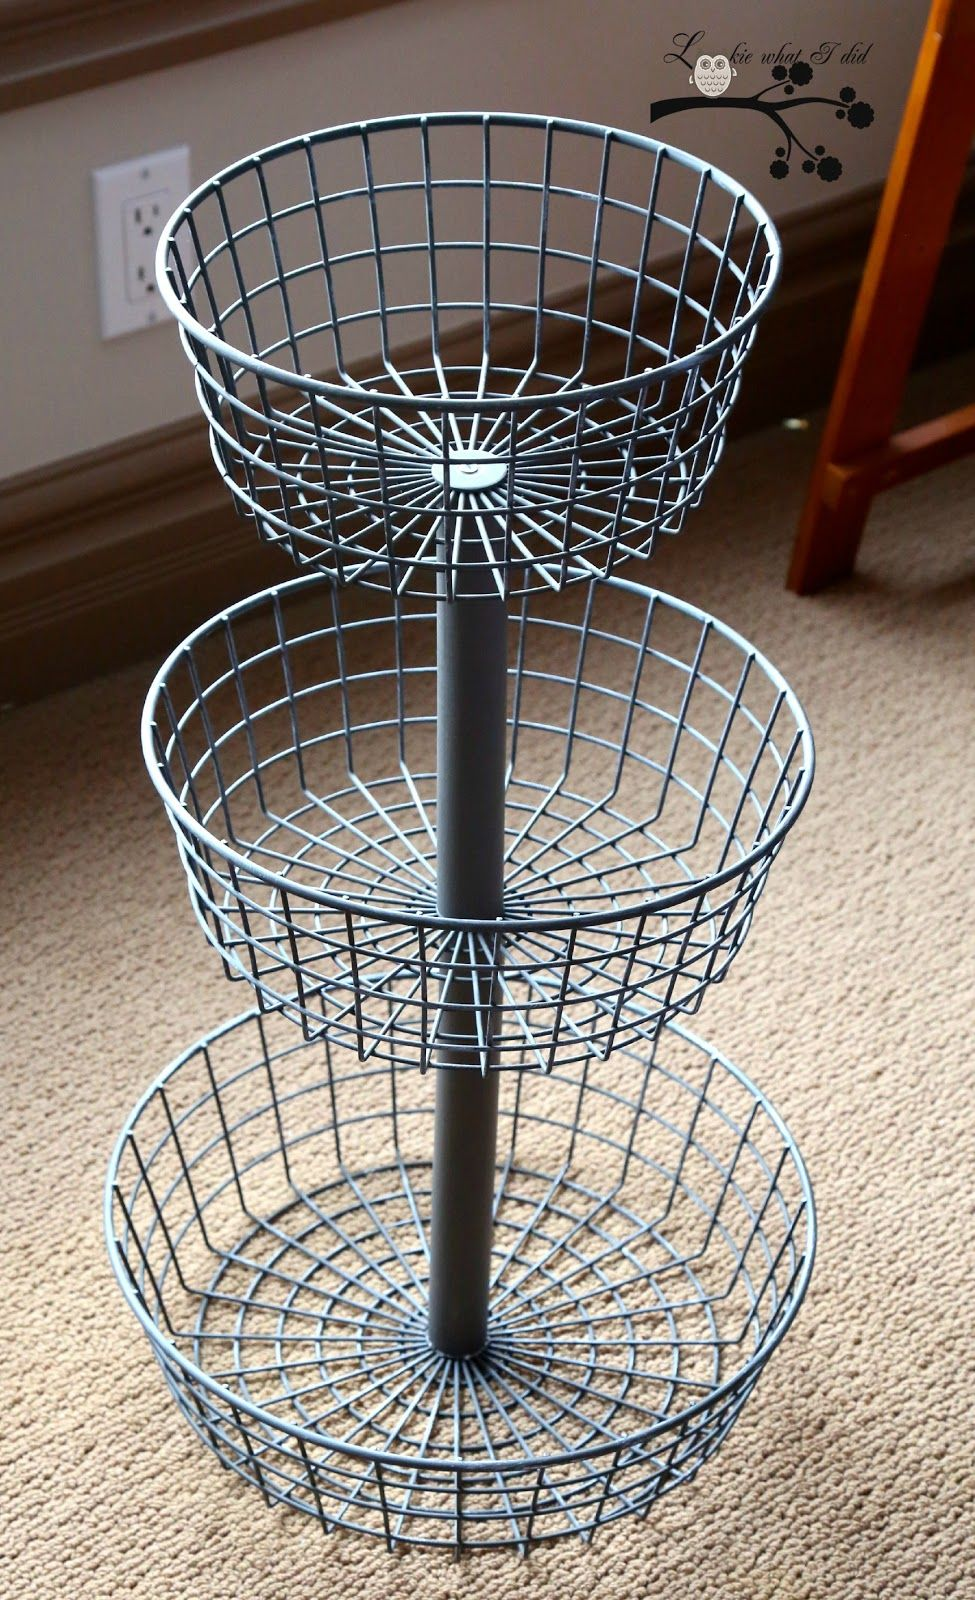 tutorial easy way turn any set baskets bowls into wire basket accent table tiered bunk beds with power strip mid century modern dining room rugs antique drop side vintage white